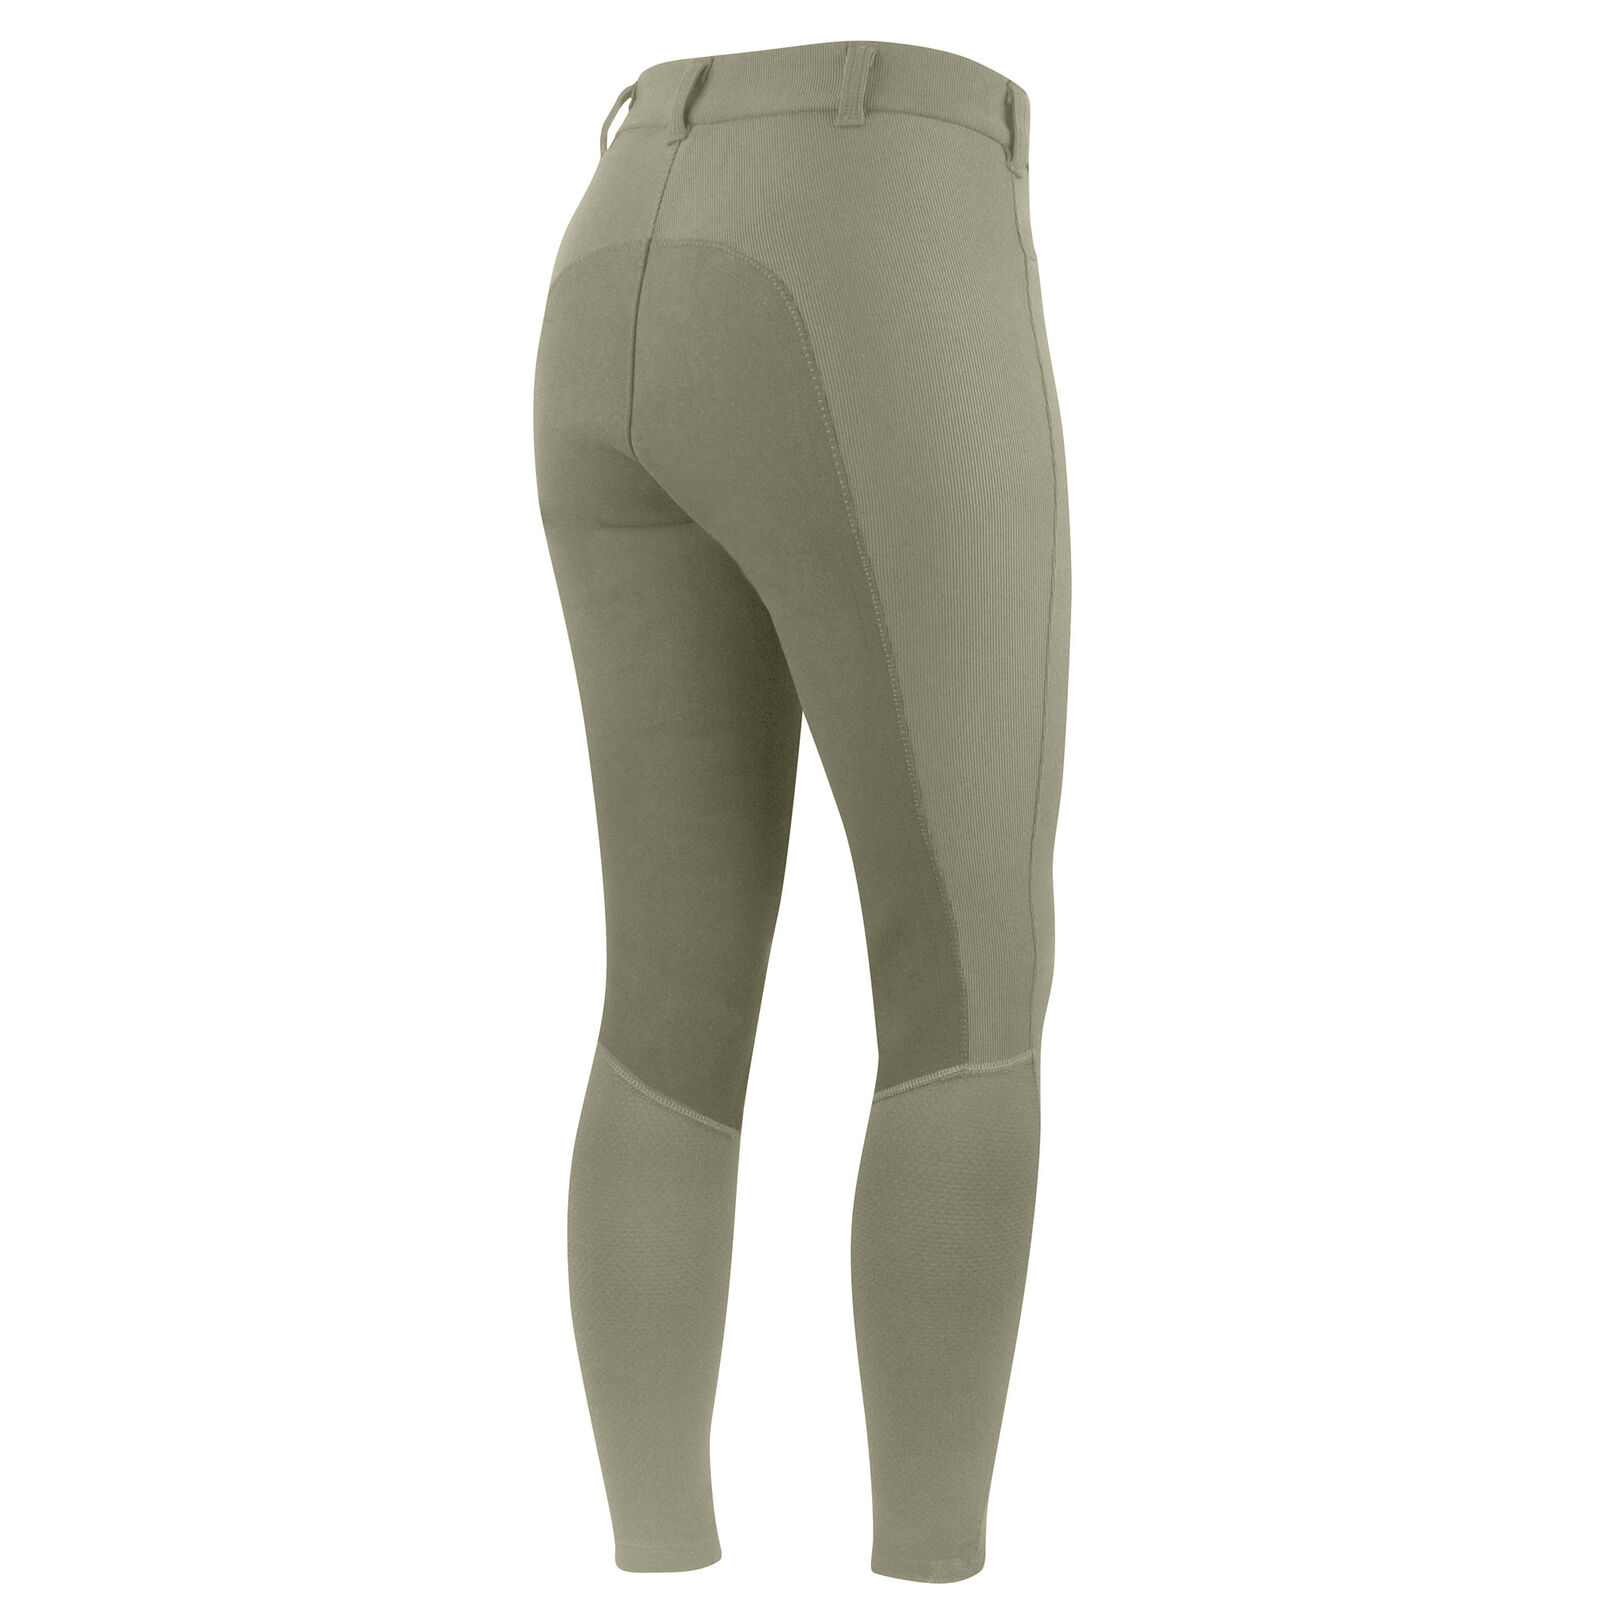 Irideon Ladies Cadence Euro Full Seat Riding Breeches Breathable Mesh Calf